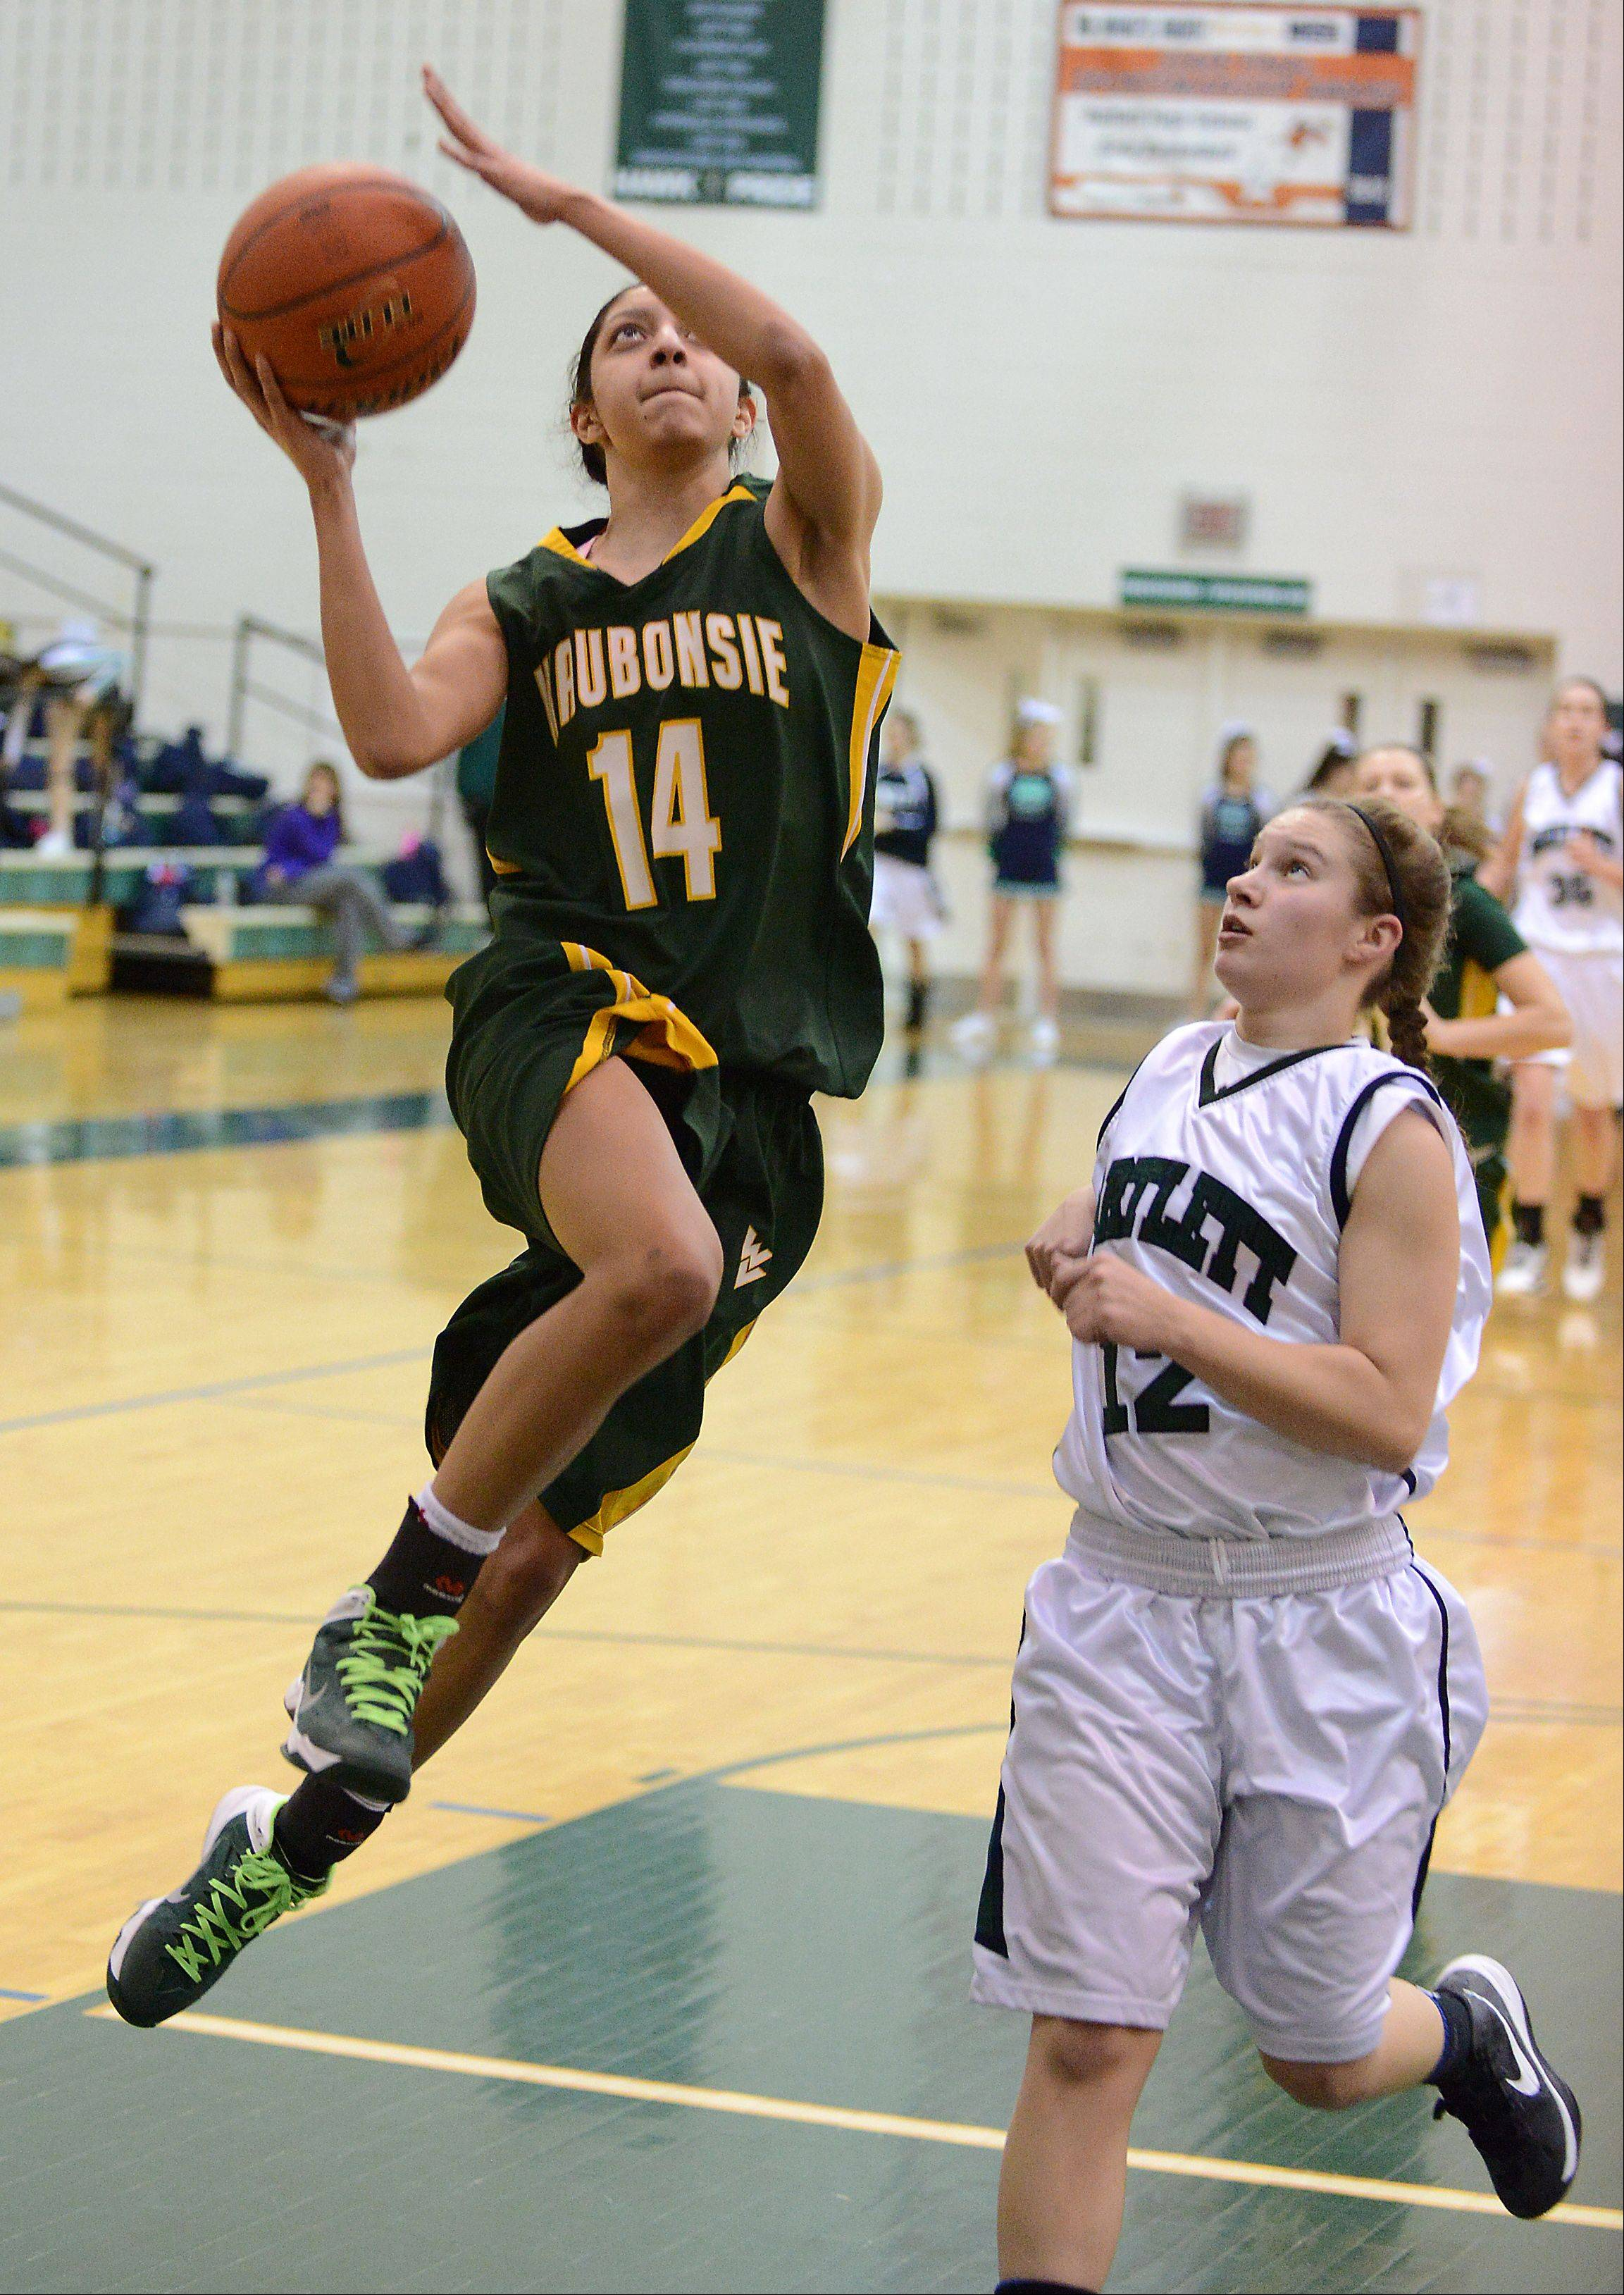 Waubonsie Valley's Andrea Colin (14) scores on a breakaway as Bartlett's Ashley Johnson (12) looks on during Thursday's game in Bartlett.